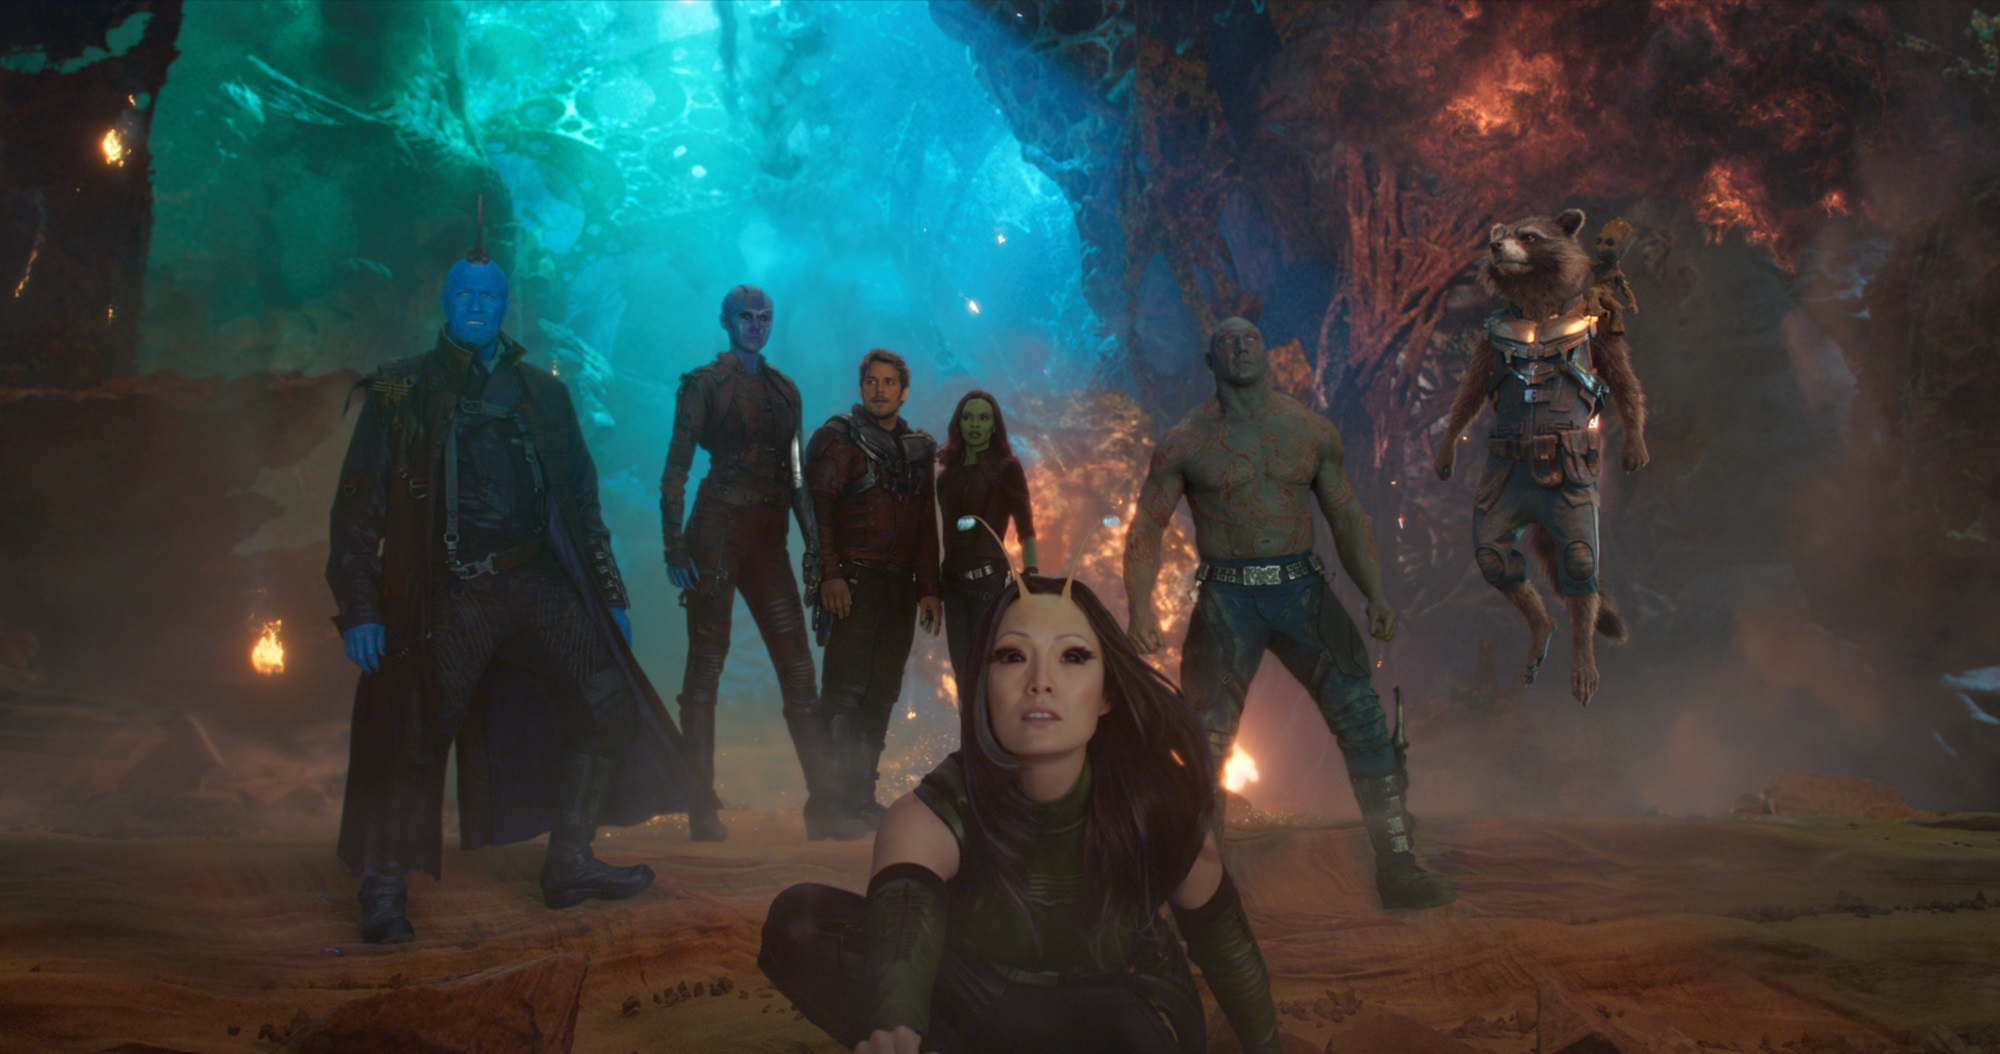 Guardians Of The Galaxy Vol 2 2017 Whats After The Credits The Definitive After Credits Film Catalog Service